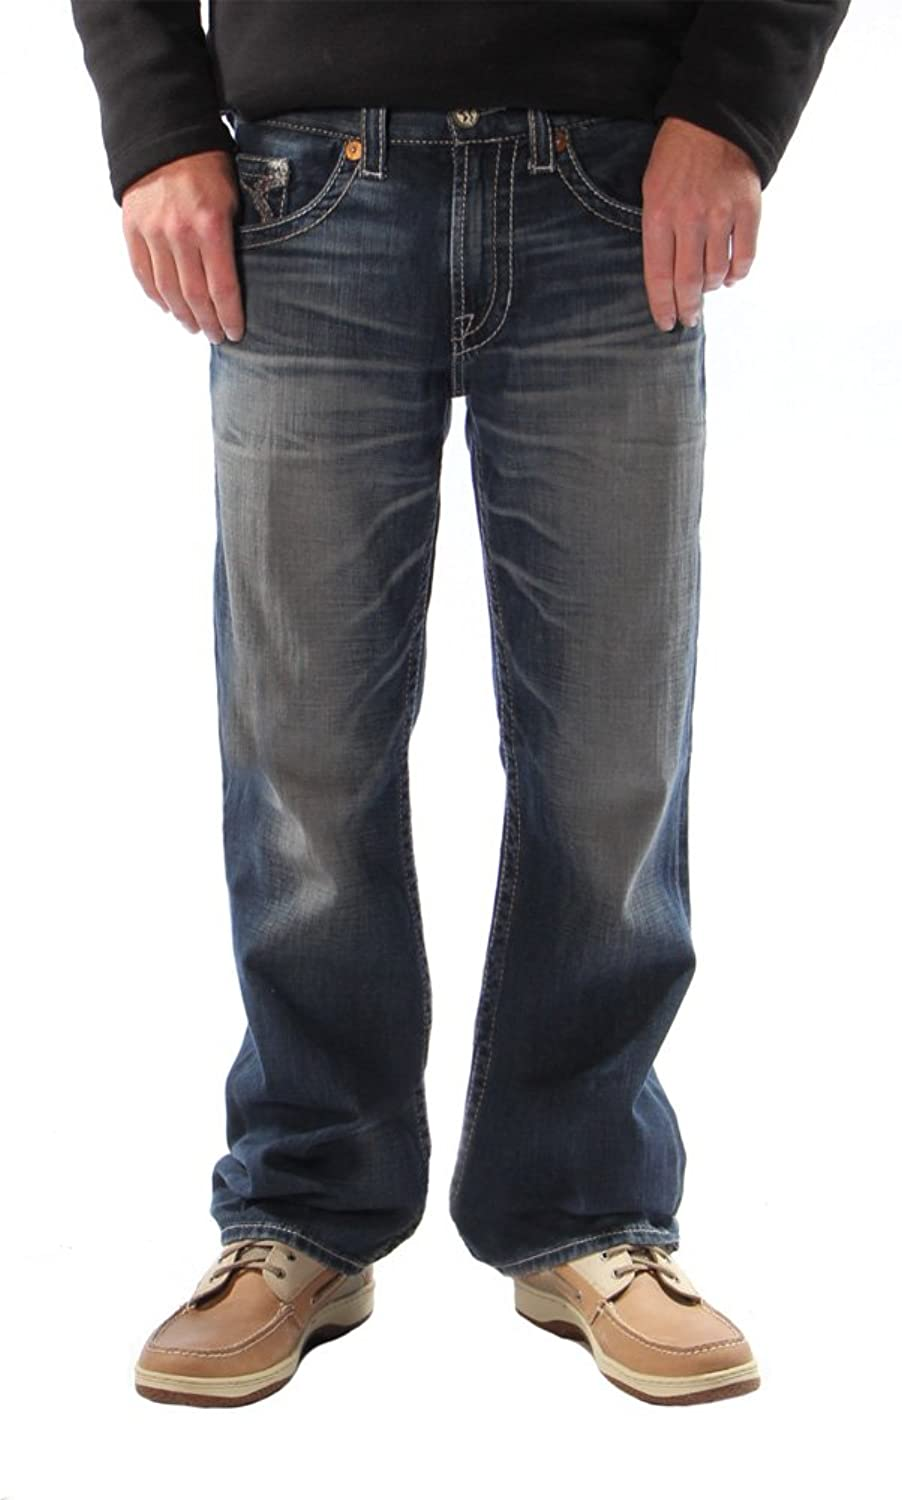 Union Regular 15 Yr Santee by Big Star Jeans